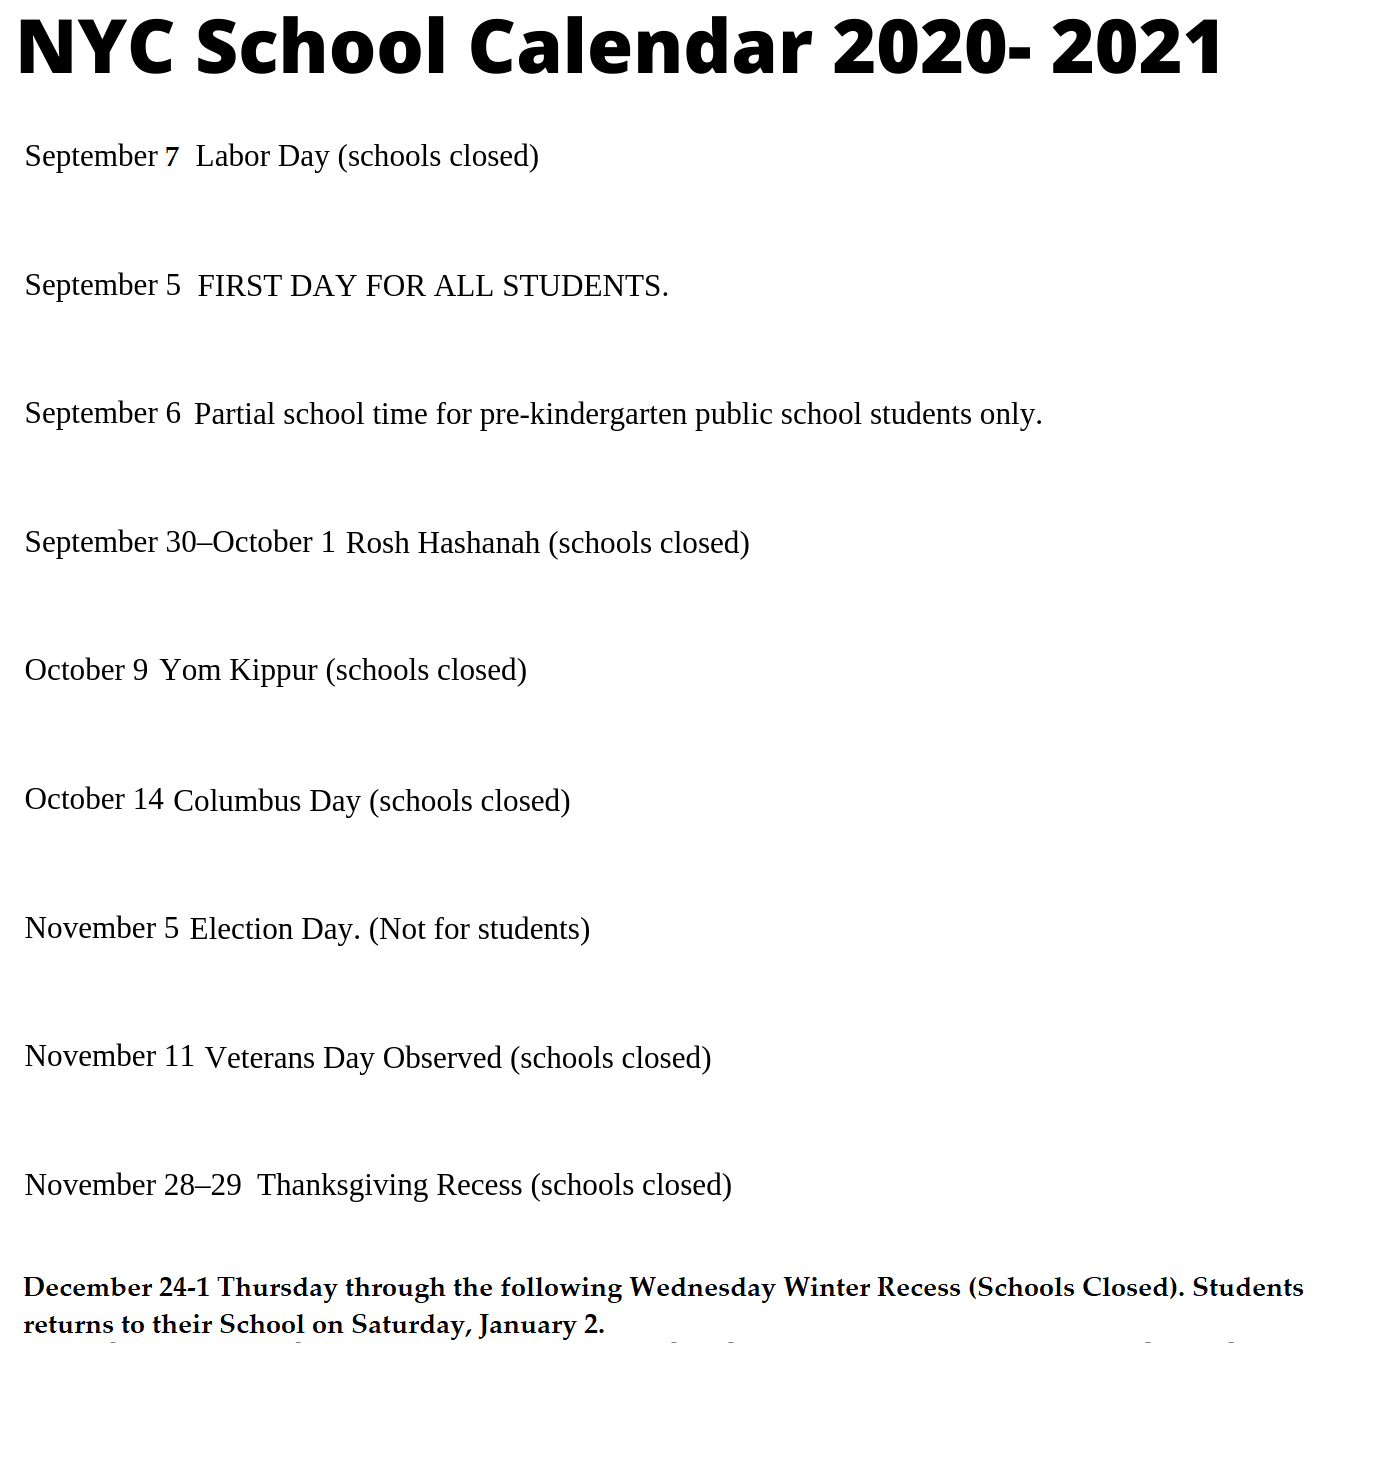 🥰nyc School Holidays Calendar 2020-2021🥰